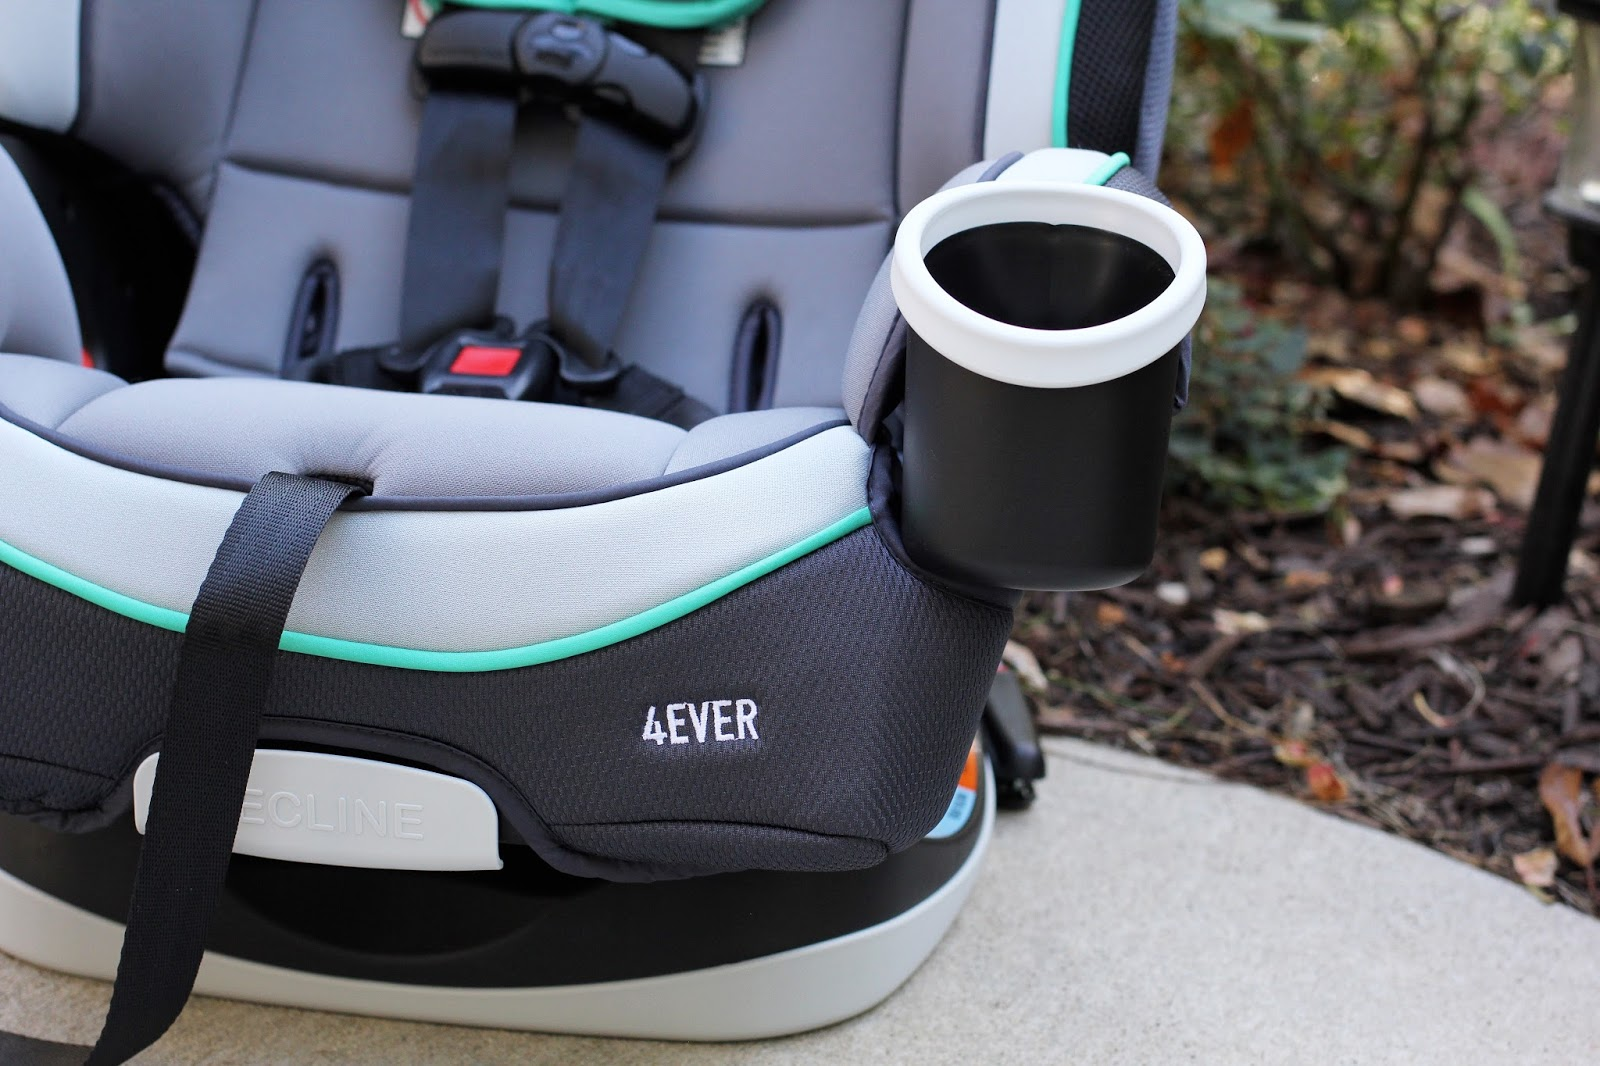 Pick a seat that your child can use for a long time we recently purchased the graco 4ever car seat for sadie and it s a 4 in 1 seat that fits children